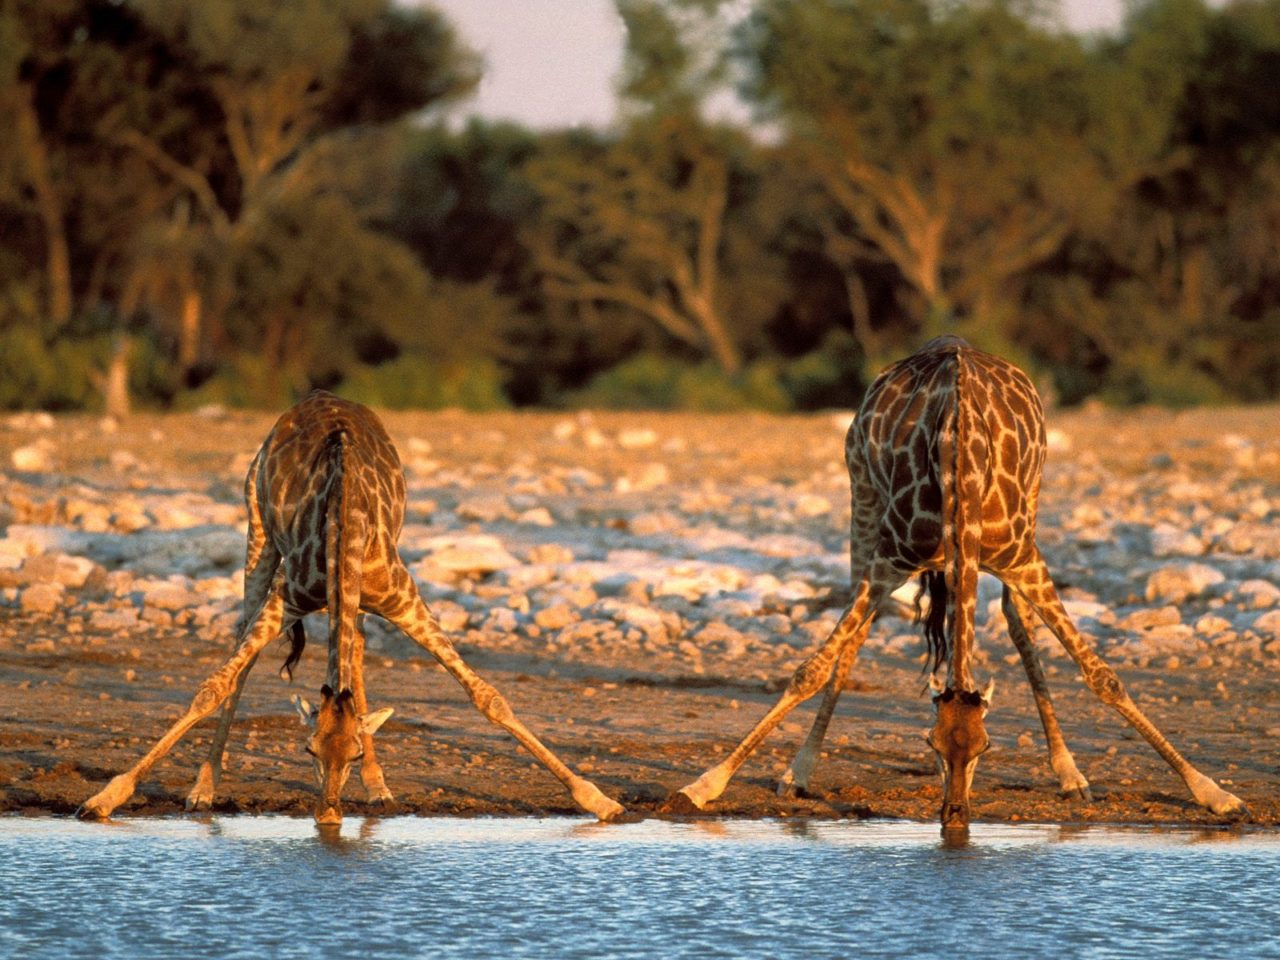 Giraffes drinking in an amazing position!